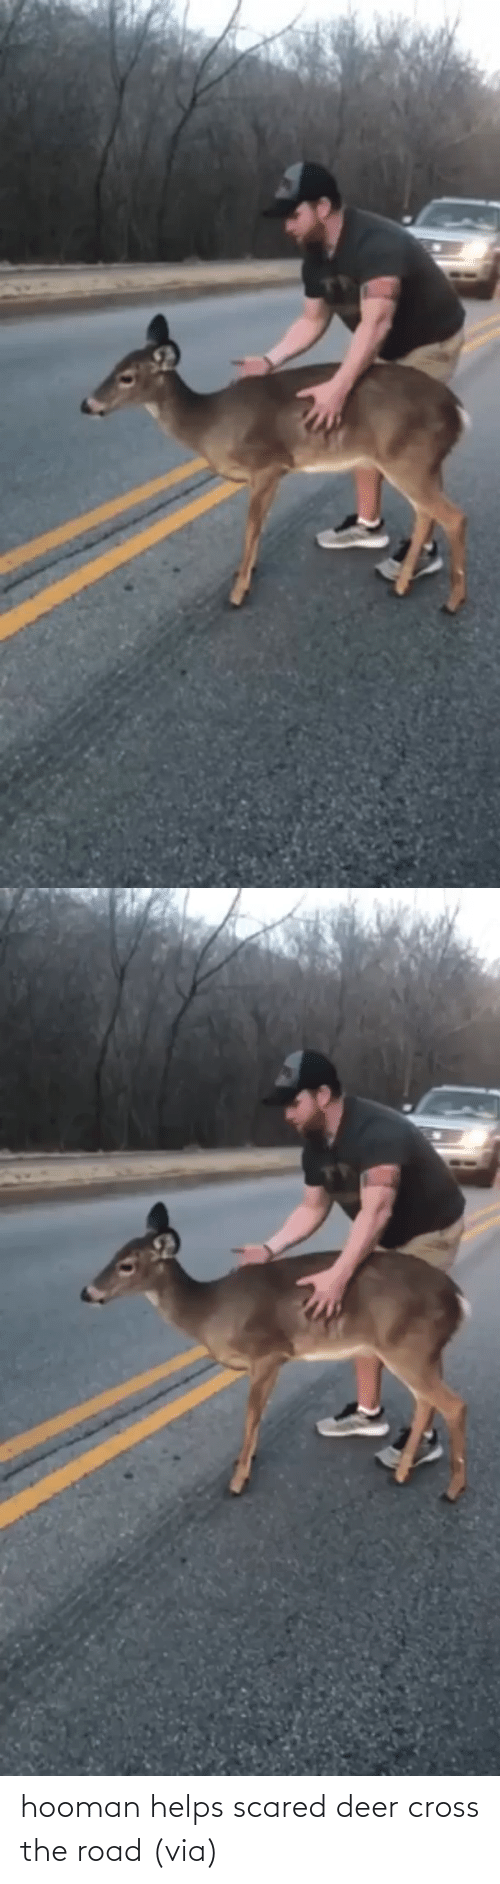 reddit: hooman helps scared deer cross the road (via)